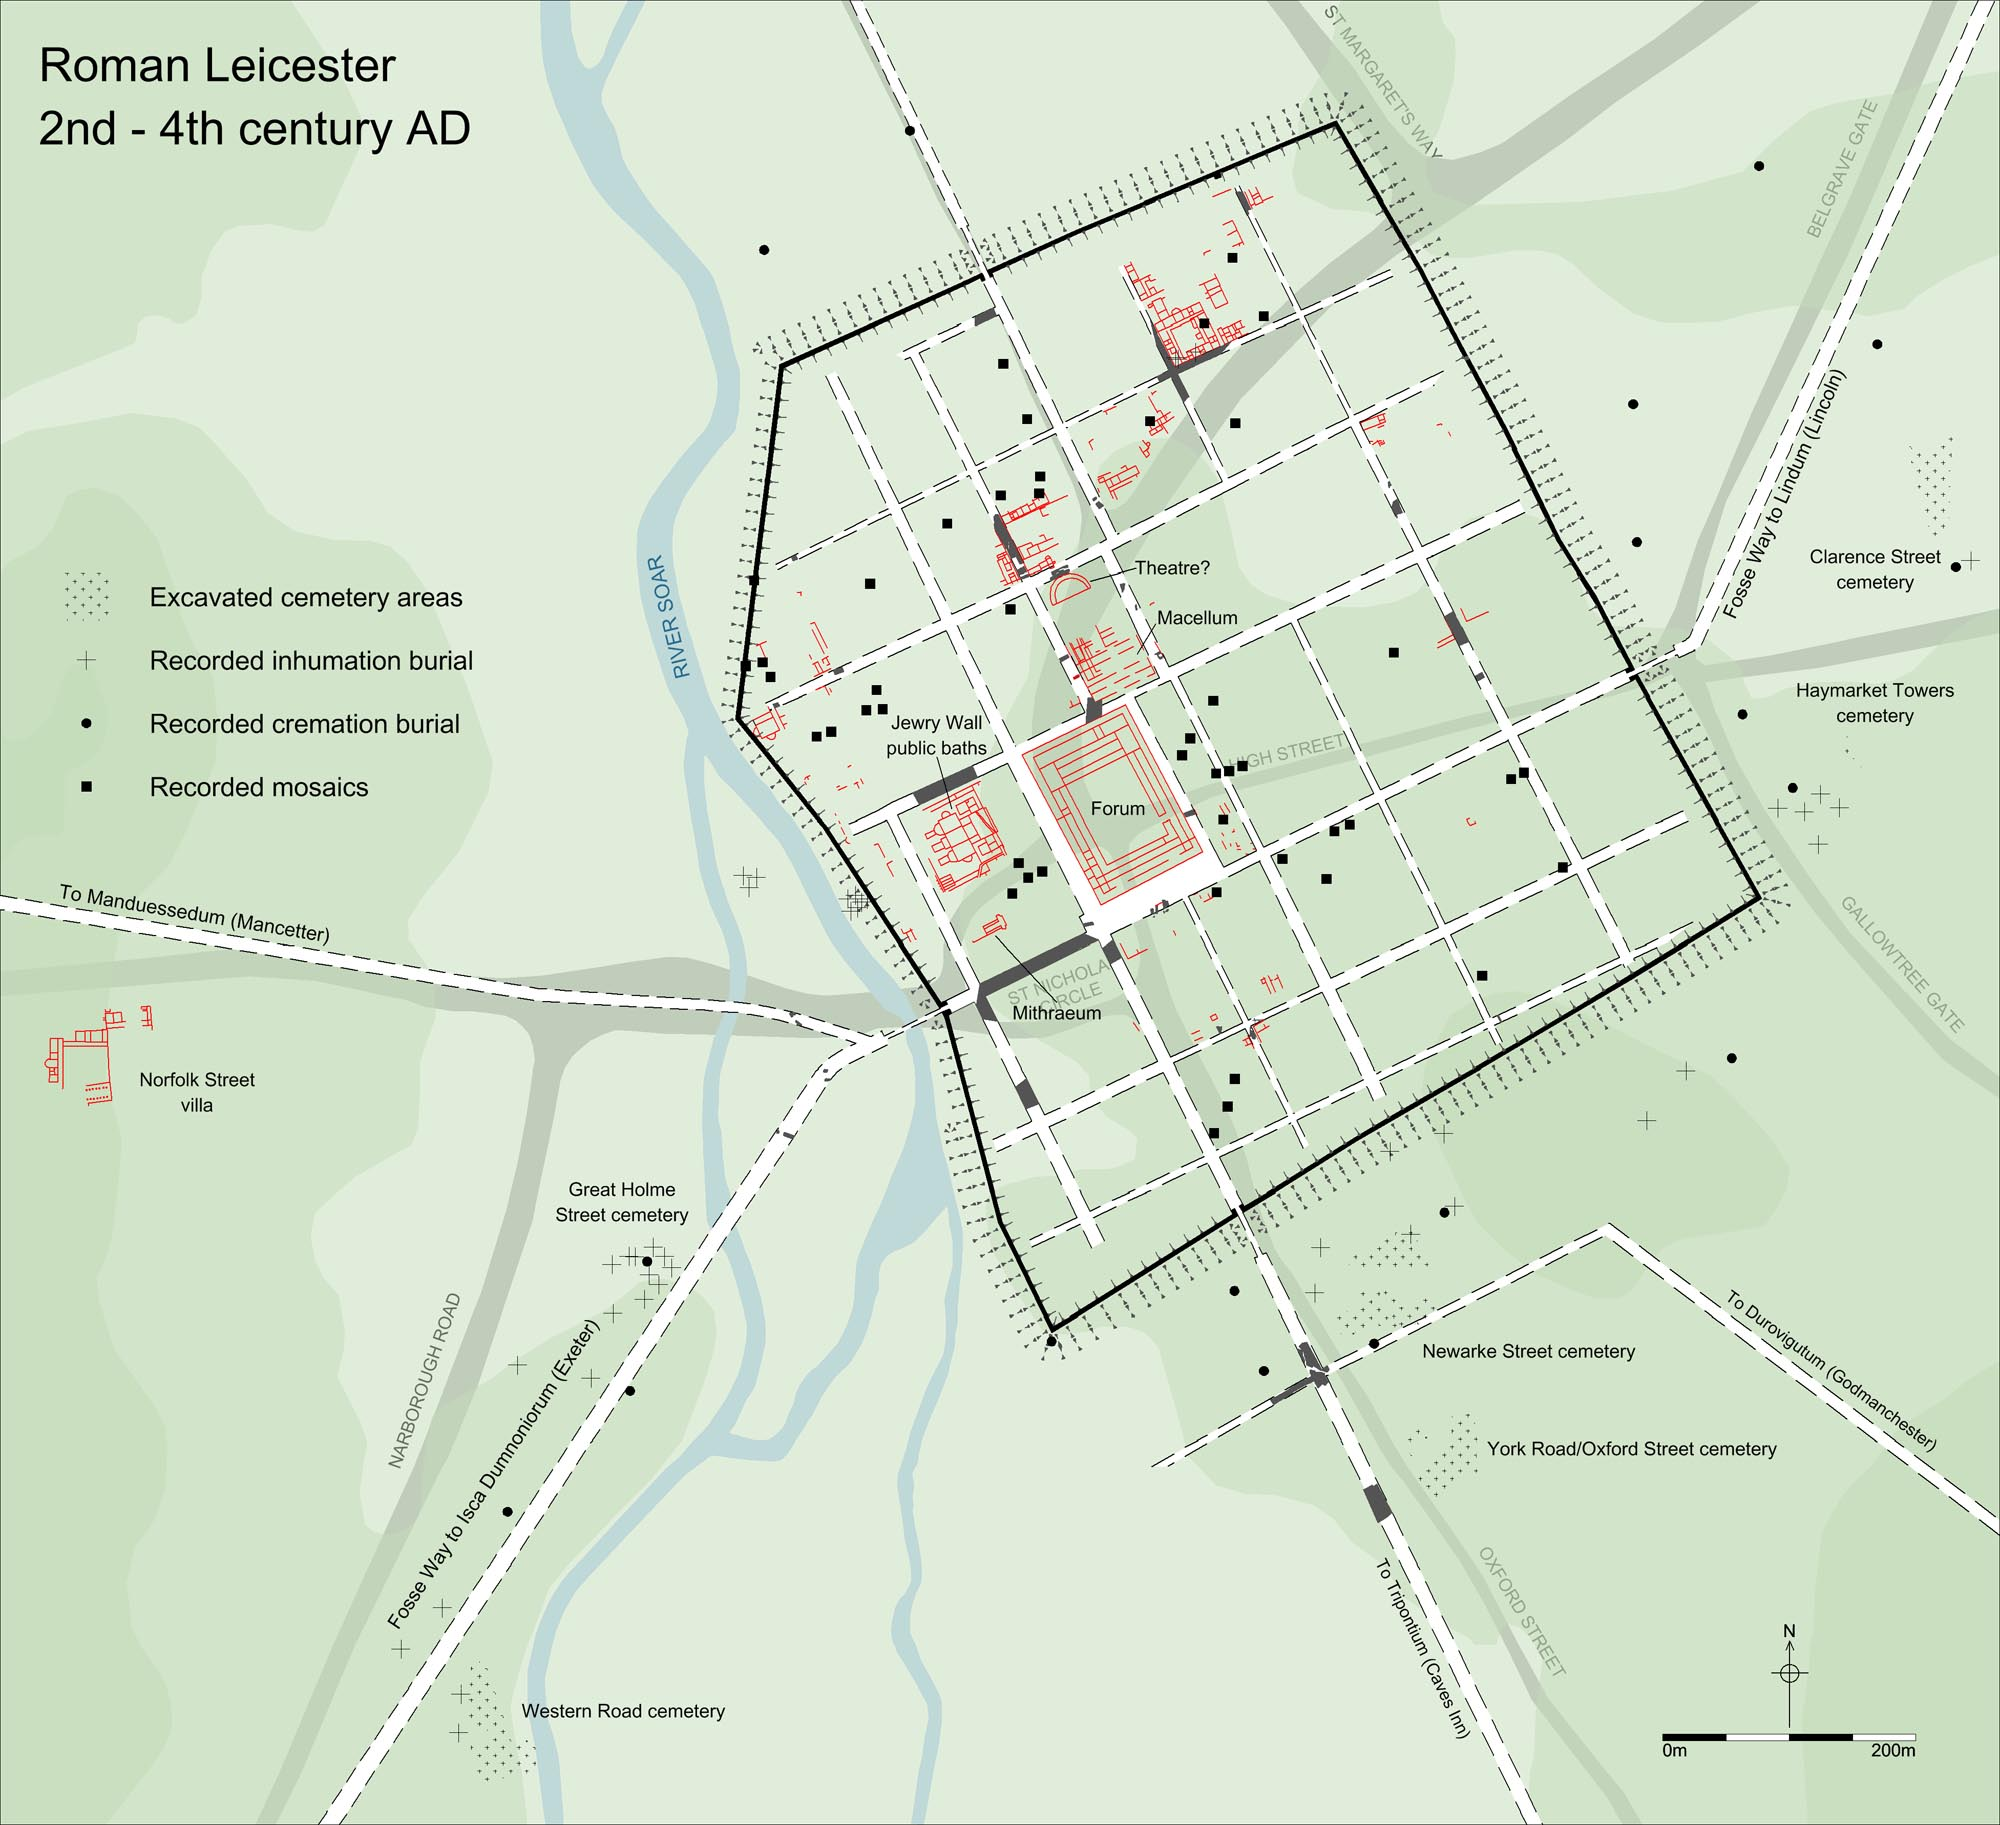 Plan of Roman Leicester - University of Leicester Archaeological Services